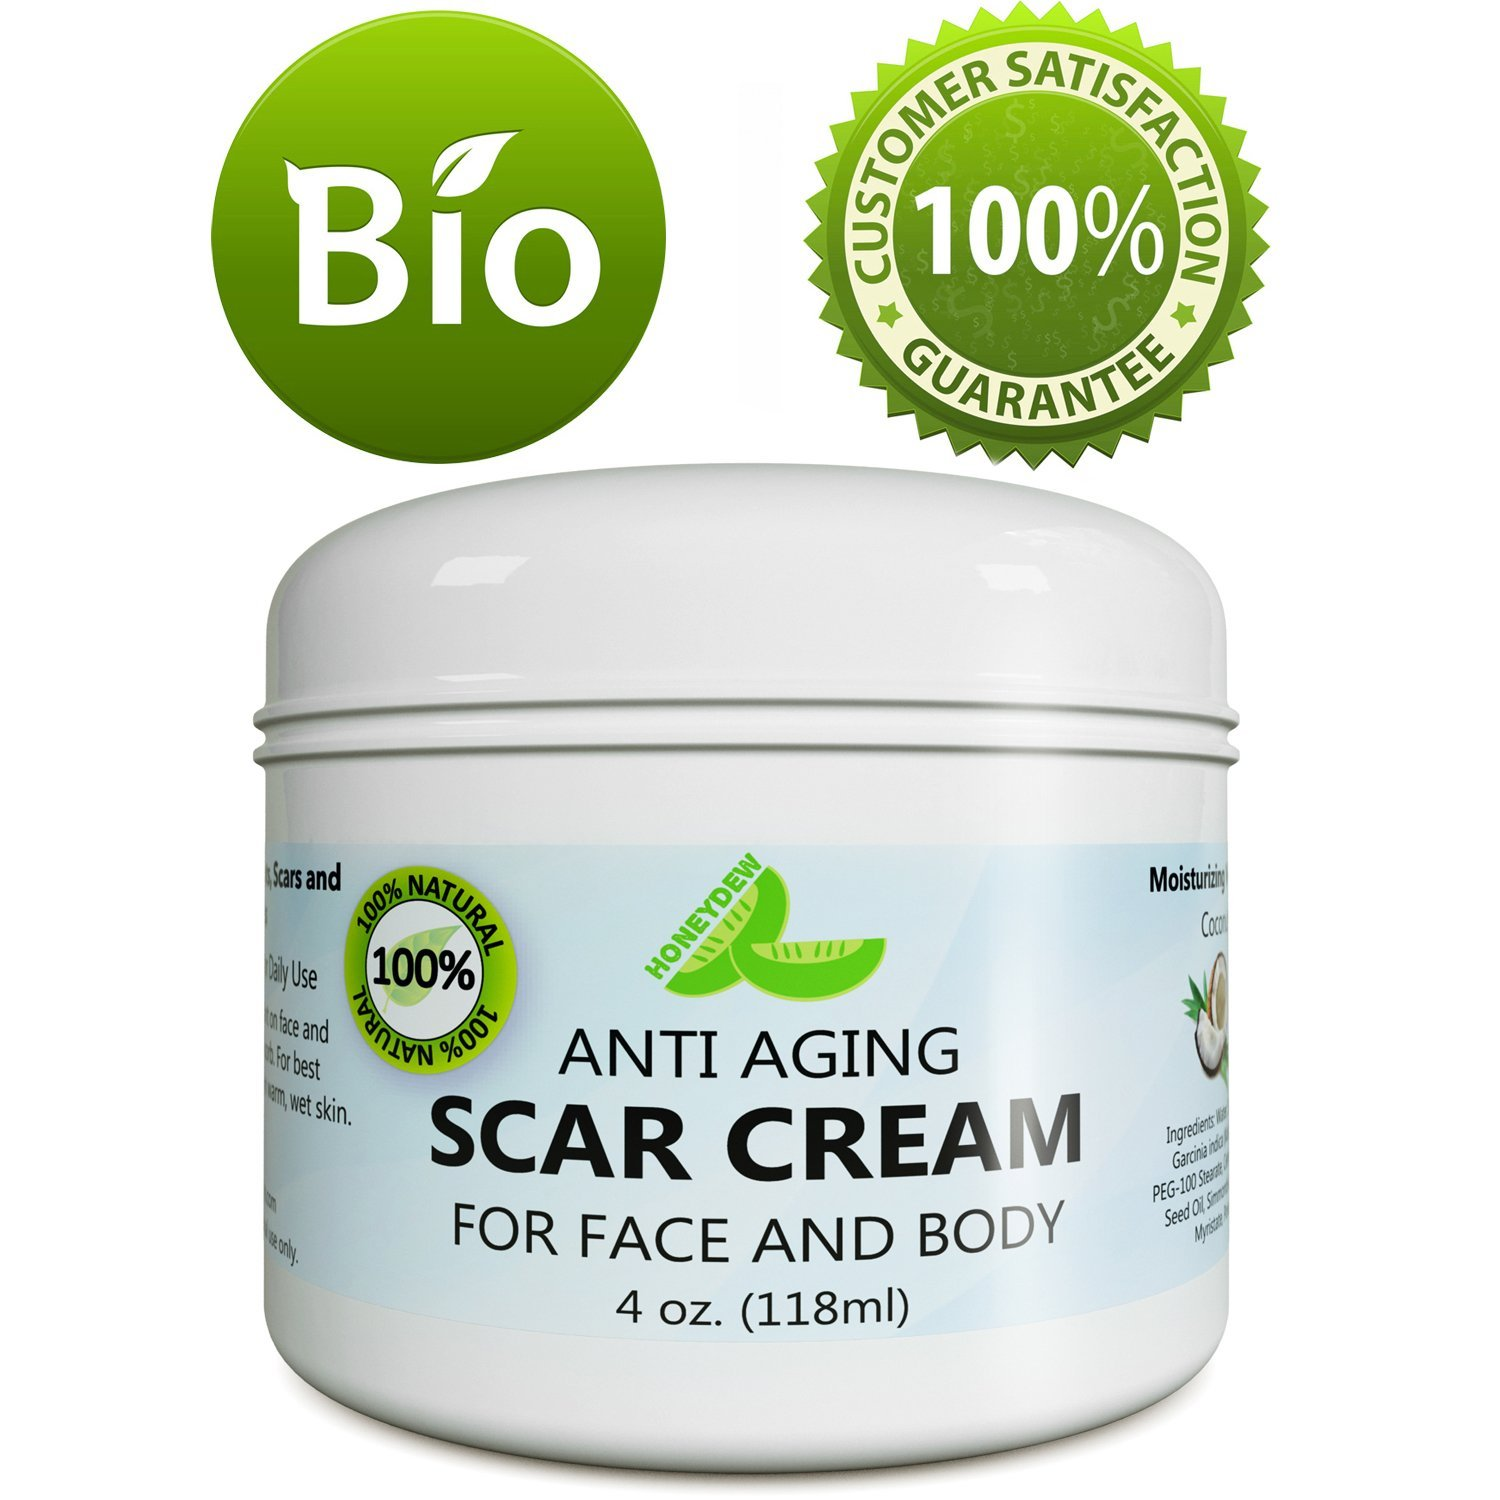 Buy Anti Aging Scar Cream For Face And Body Scar Removal Cream